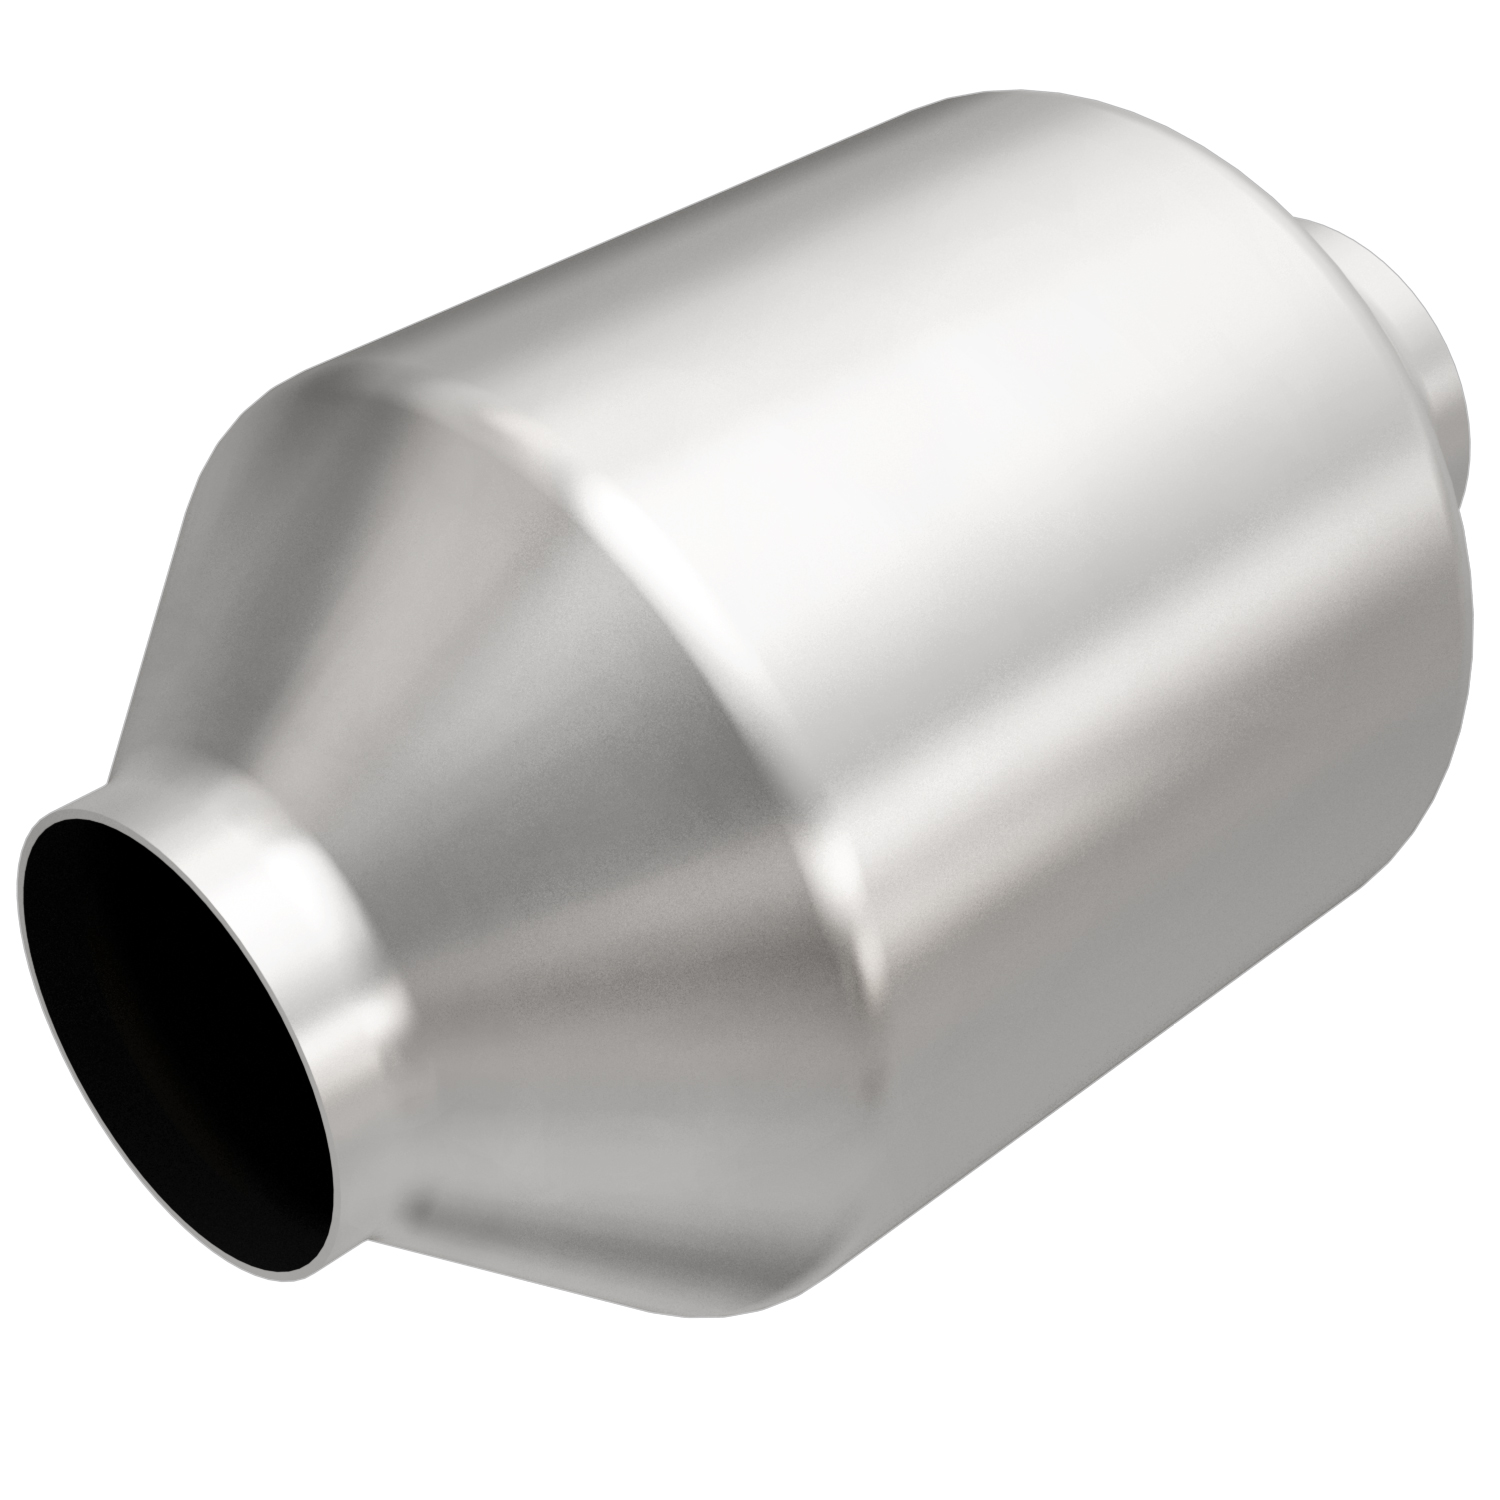 """Magnaflow 5551205   2.25"""" in/out   5"""" Round Body   9.03"""" Body Length   Universal-Weld In   California + NY Legal Catalytic Converter   EO D-193-141"""